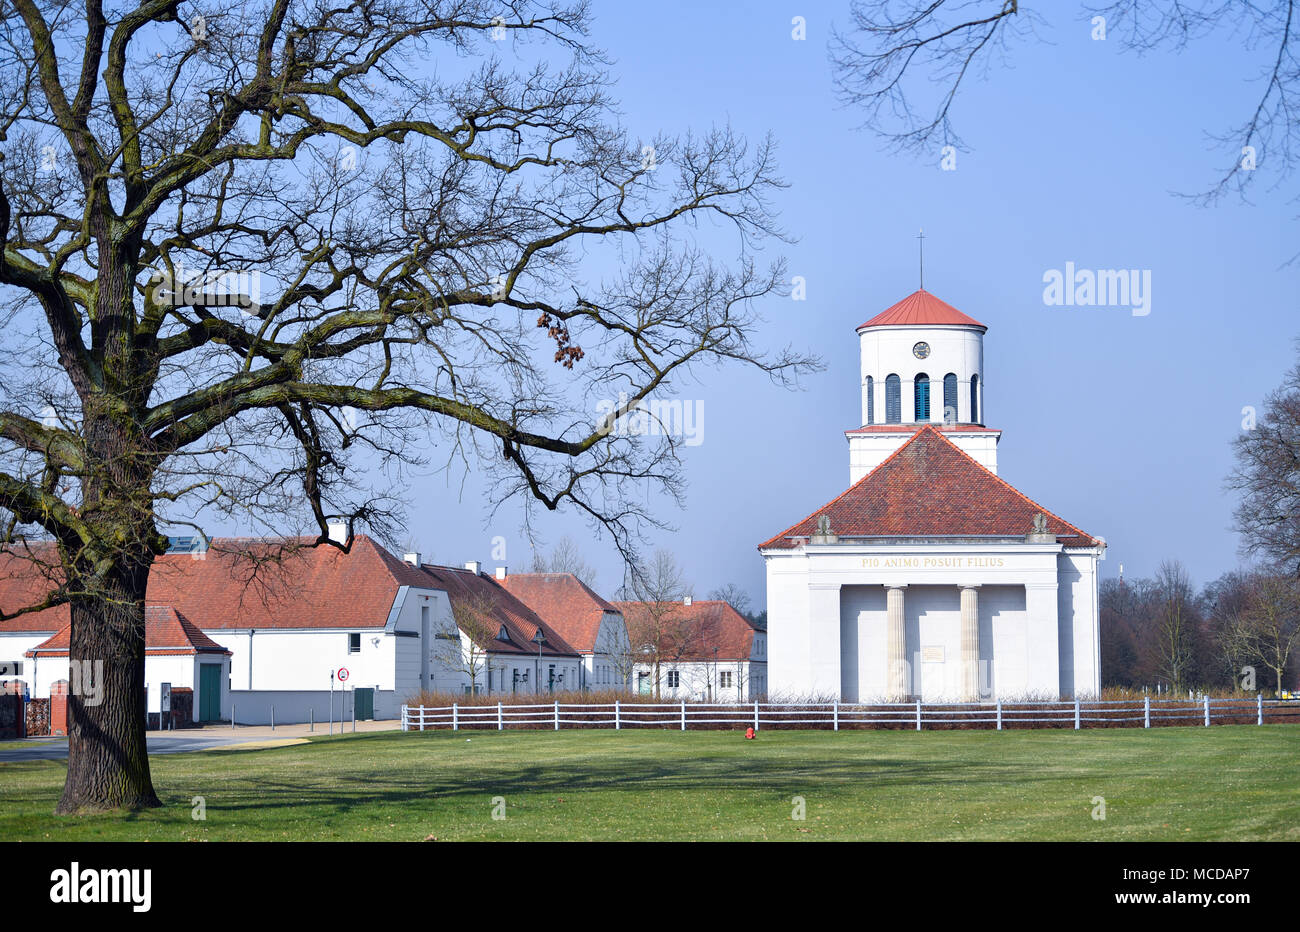 10 April 2018, Germany, Neuhardenberg: A view of the Schinkel church. The town was previoulsy known as Marxwalde after German philosopher, economist and social theorist Karl Marx (May, 05 1818 - March, 14 1883) during the GDR era and renamed to Neuhardenberg after the fall of the Berlin Wall. Photo: Patrick Pleul/dpa-Zentralbild/dpa Stock Photo